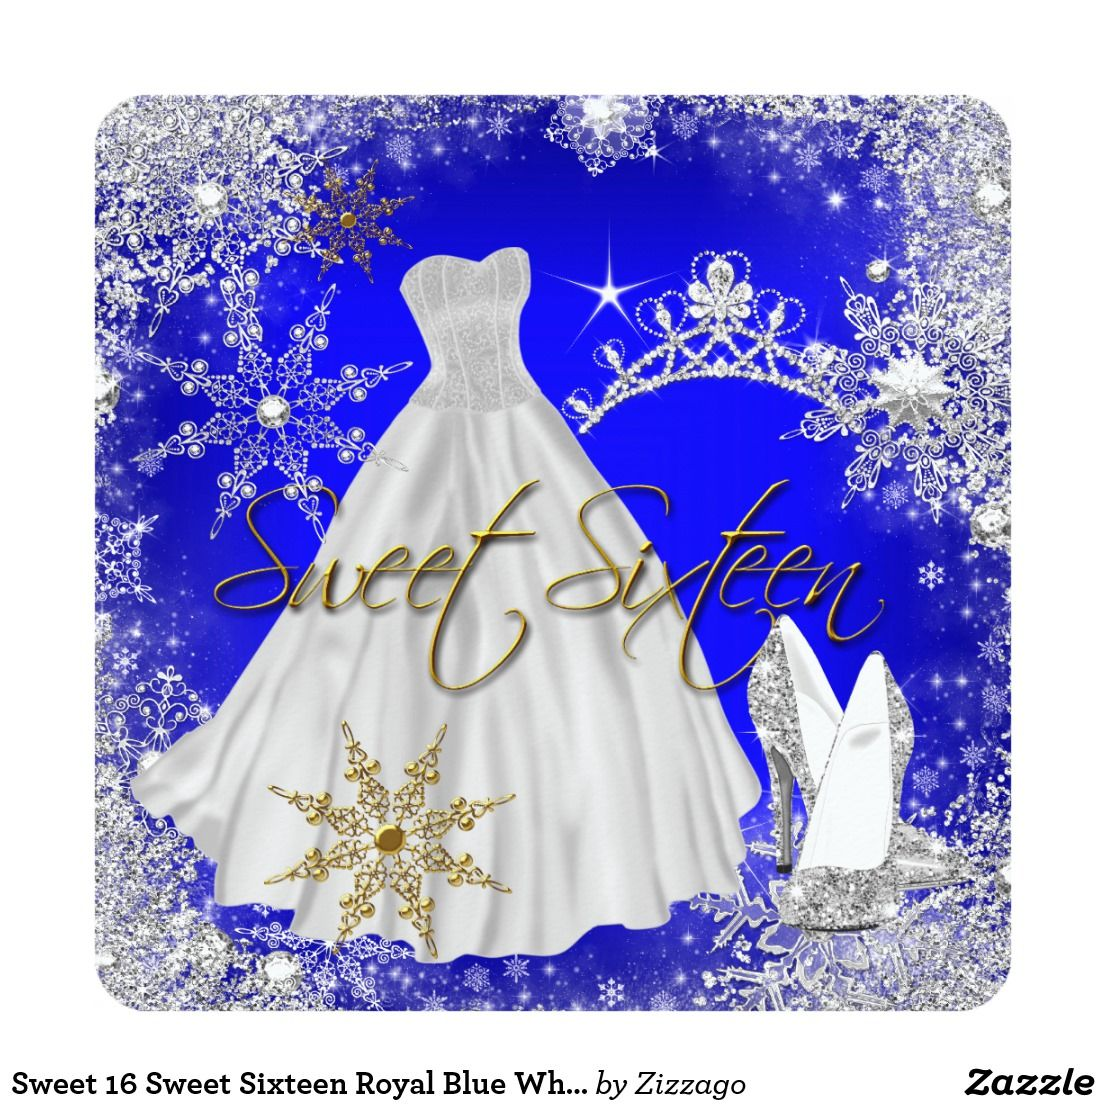 sweet 16 sweet sixteen royal blue white snowflakes invitation in